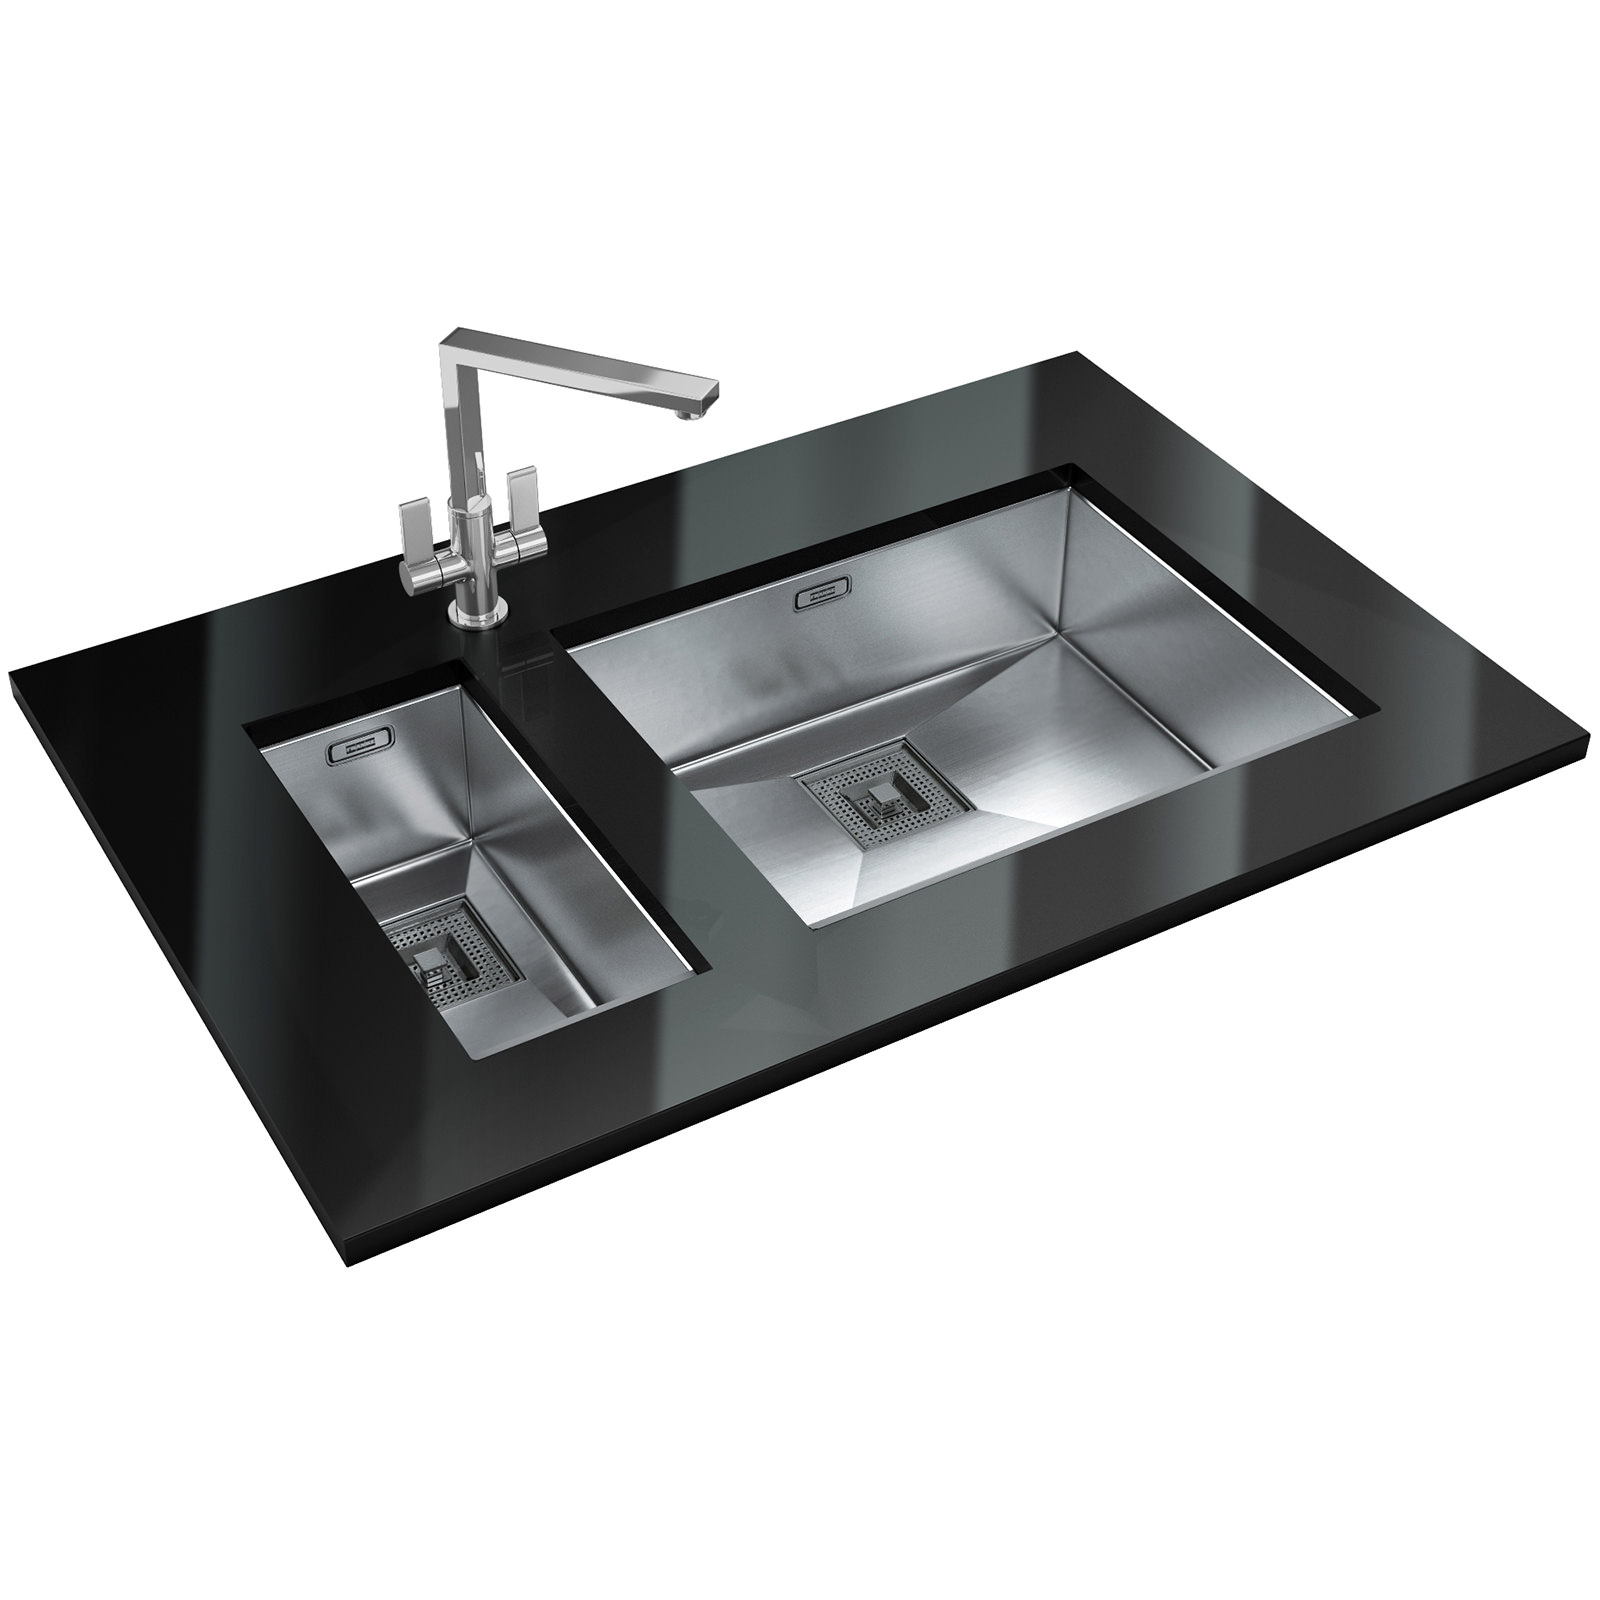 Franke Peak PKX 110 55 Stainless Steel 1.0 Bowl Undermount Sink ...